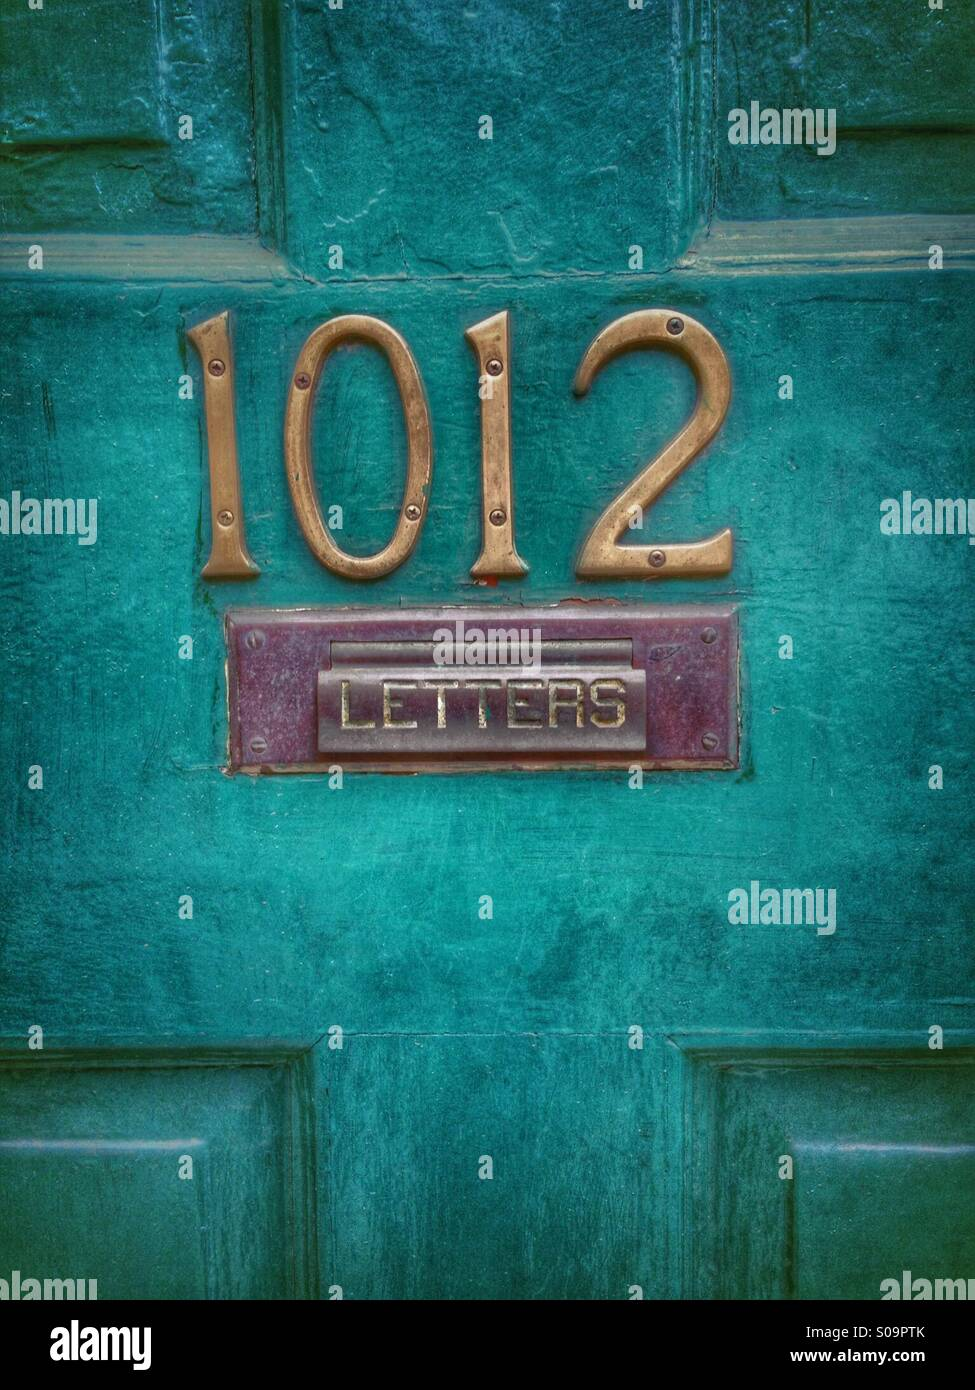 Sur Letterbox porte ancienne. Photo Stock